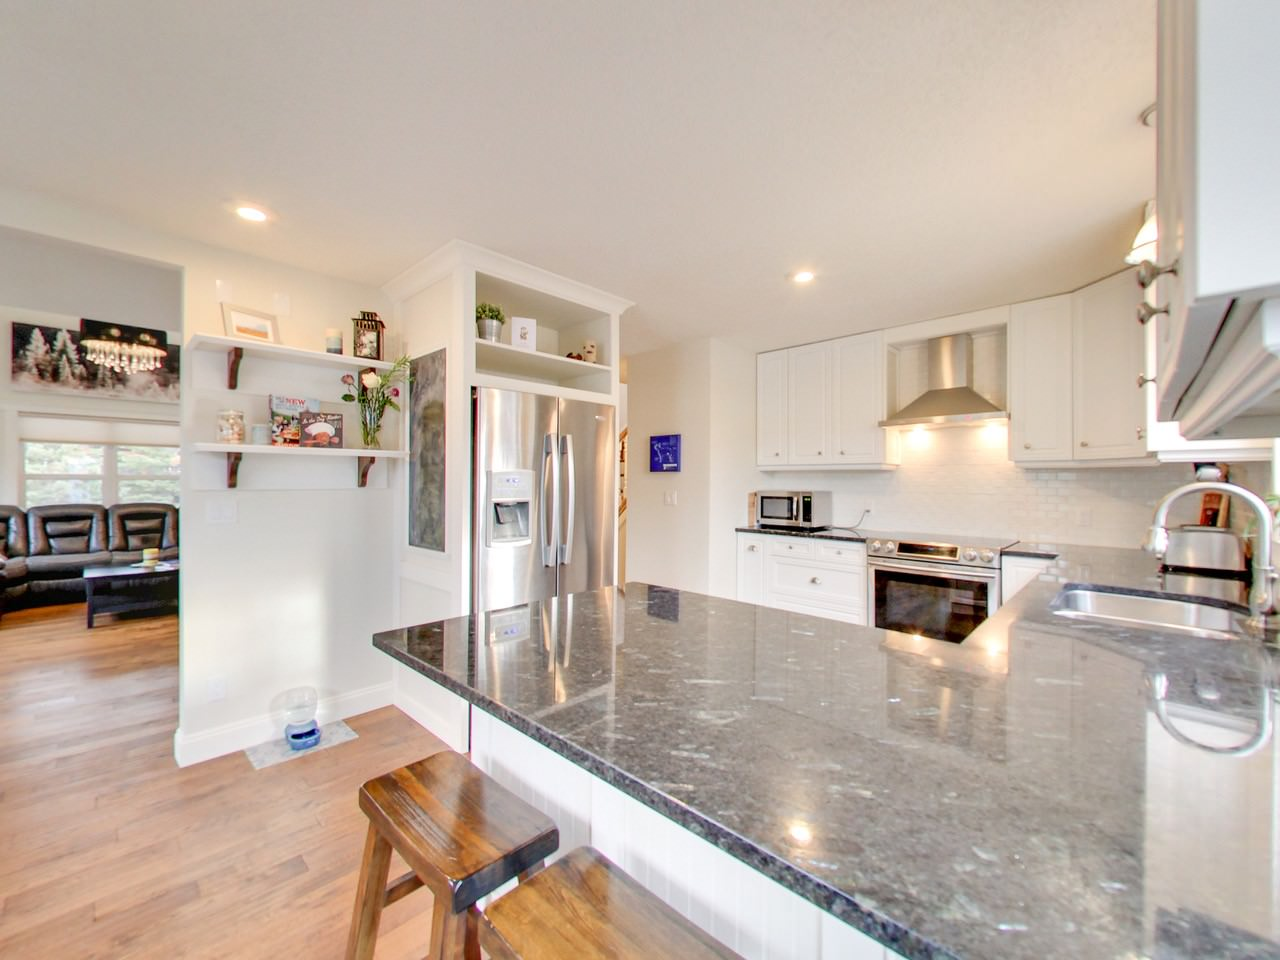 Timeless kitchen remodel featuring granite counters.